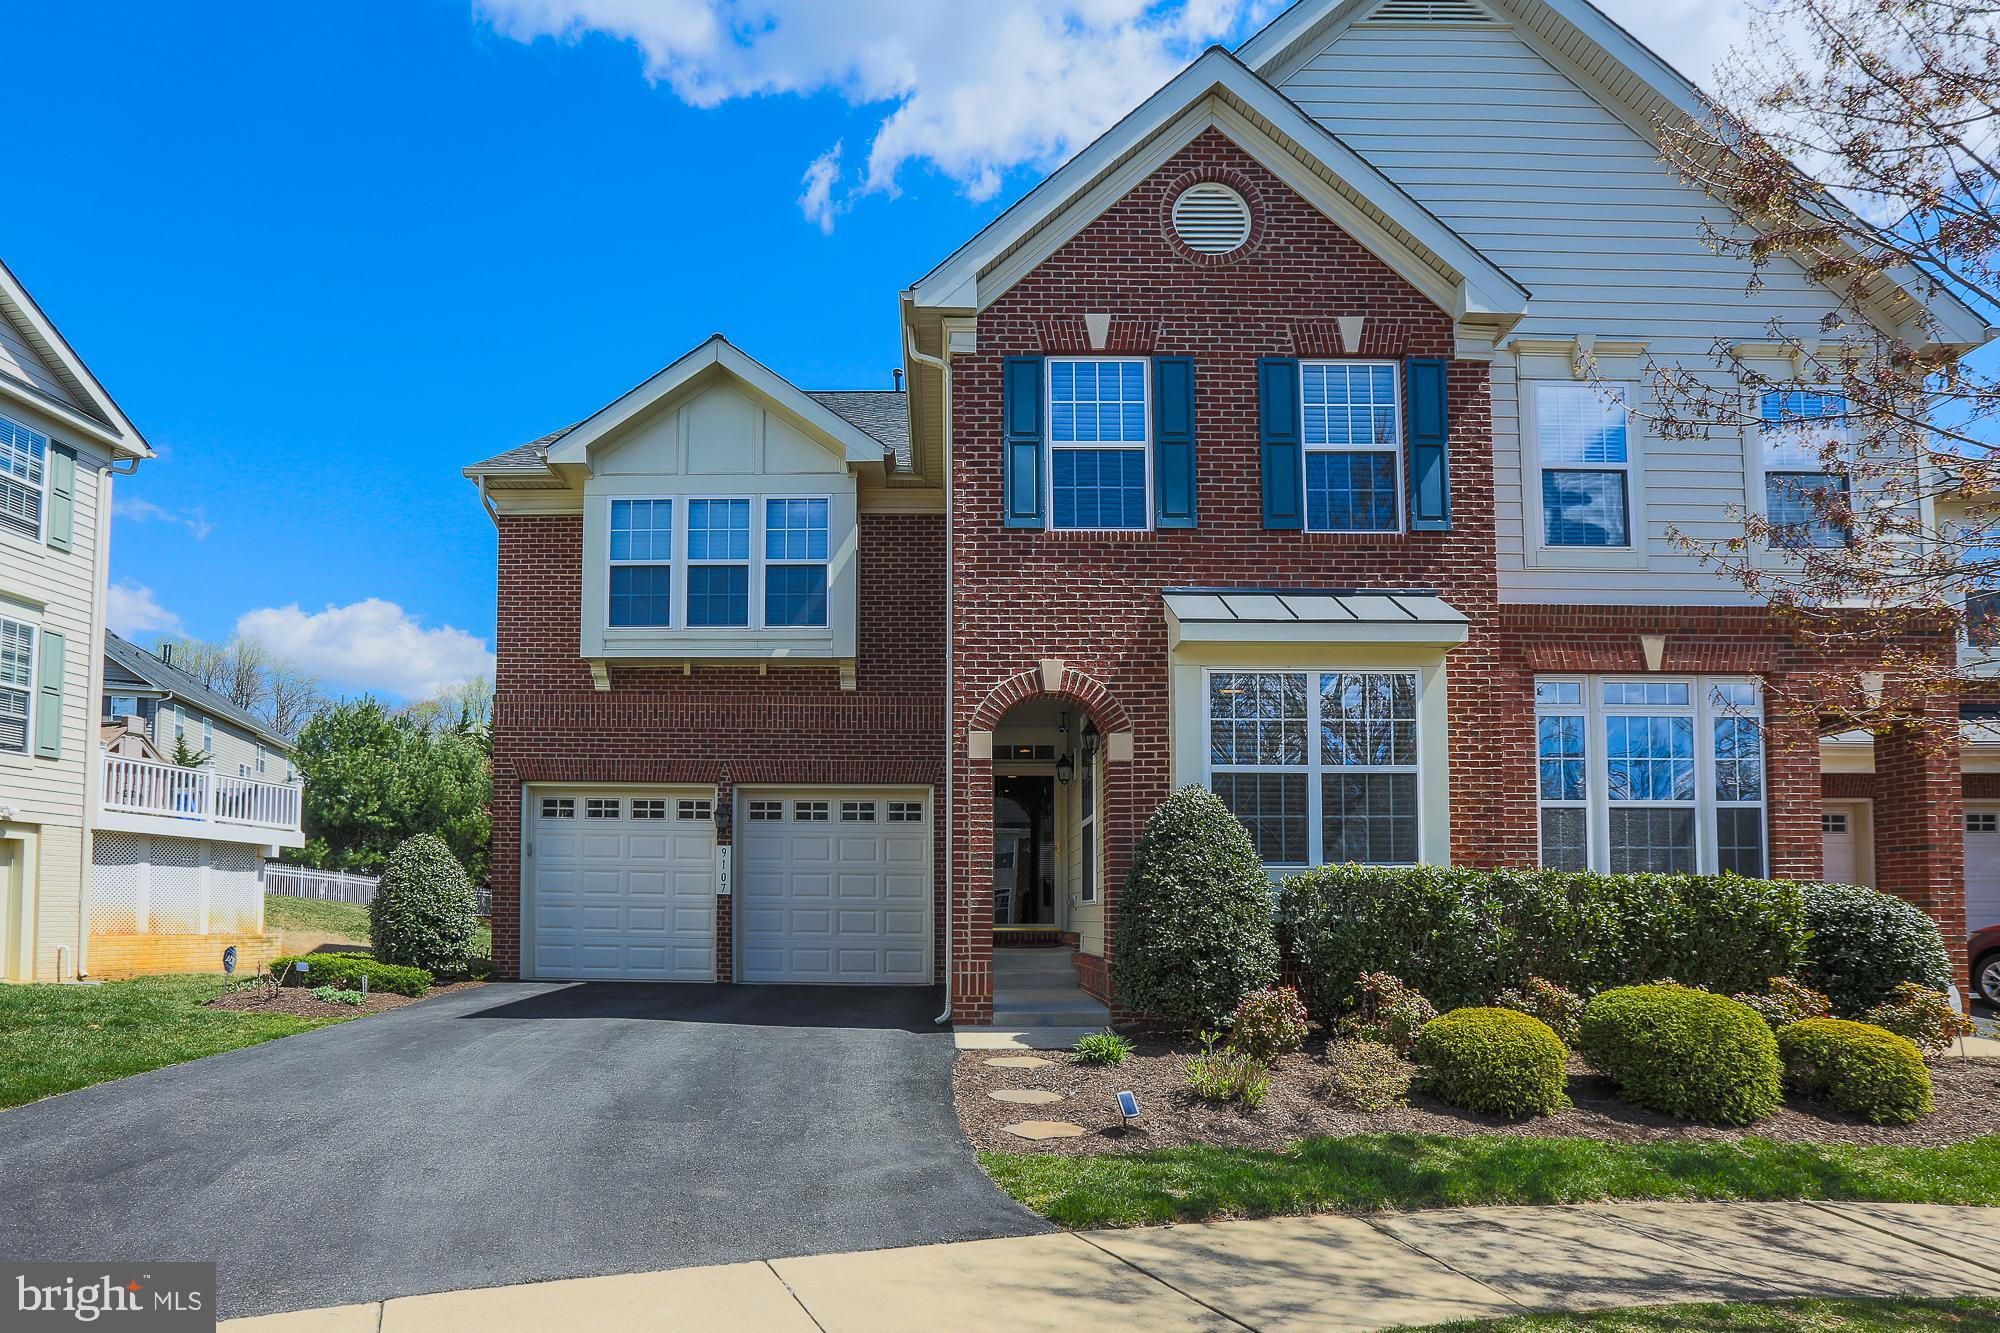 9107 BACK DROP DRIVE, PERRY HALL, MD 21128